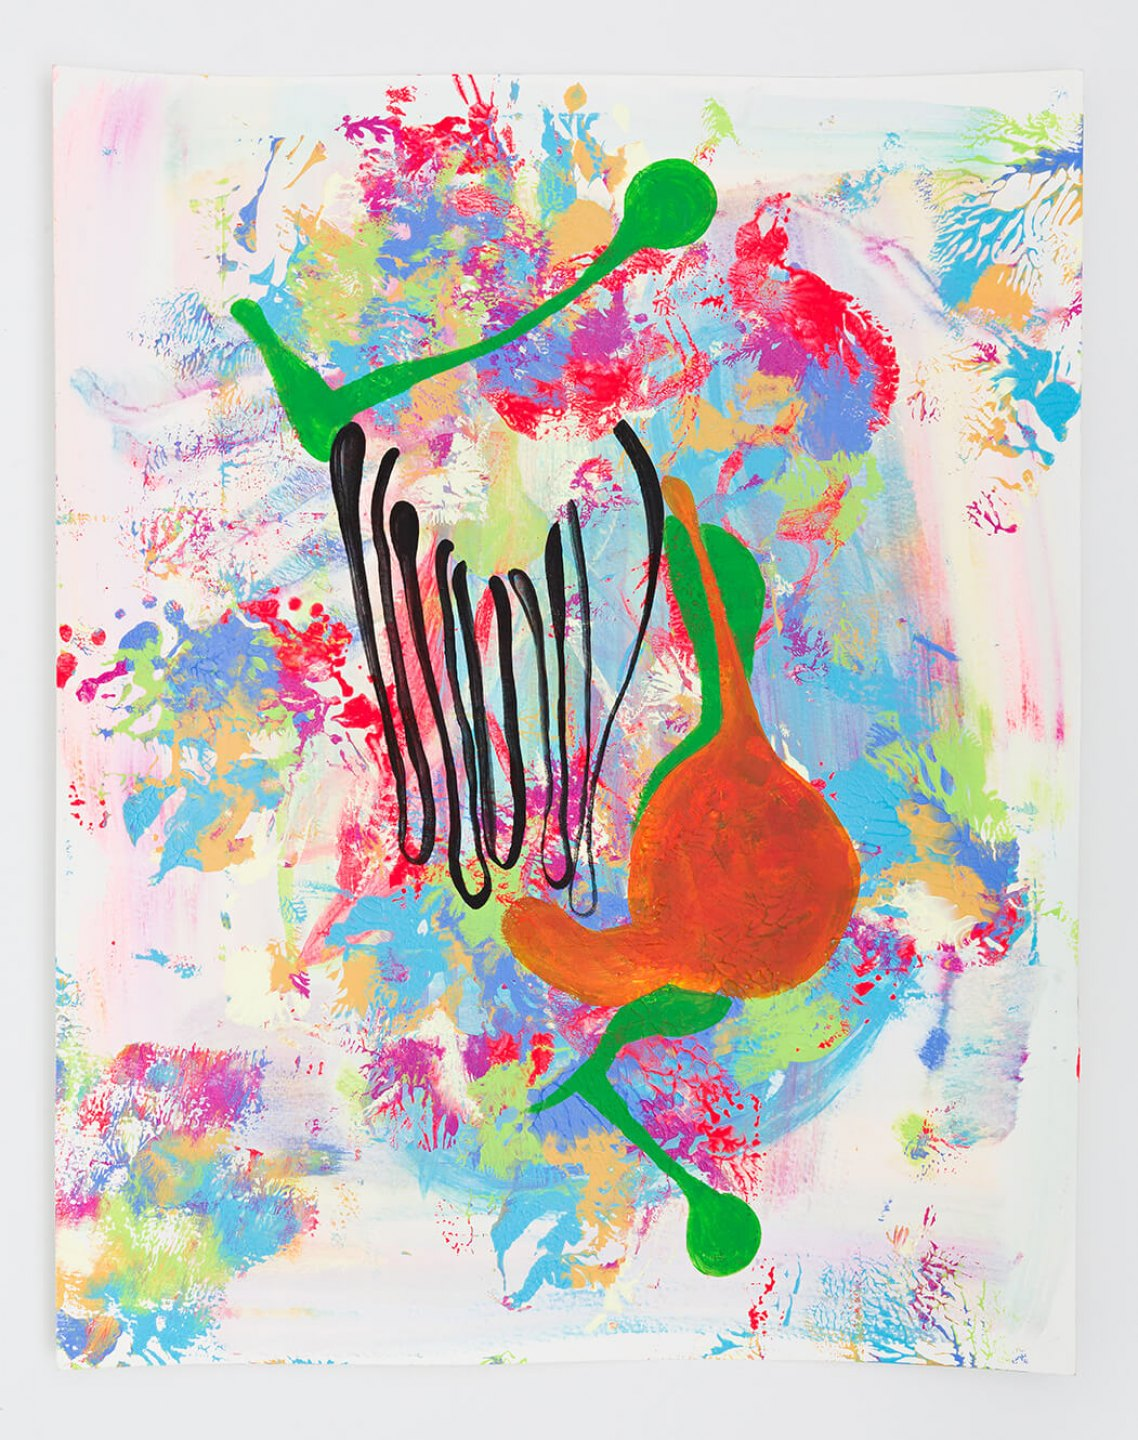 Cibelle Cavalli Bastos, <em>If you had come sooner wouldn't have known better,</em> 2014, acrylic and silkscreen ink on paper, 50 × 41 cm - Mendes Wood DM